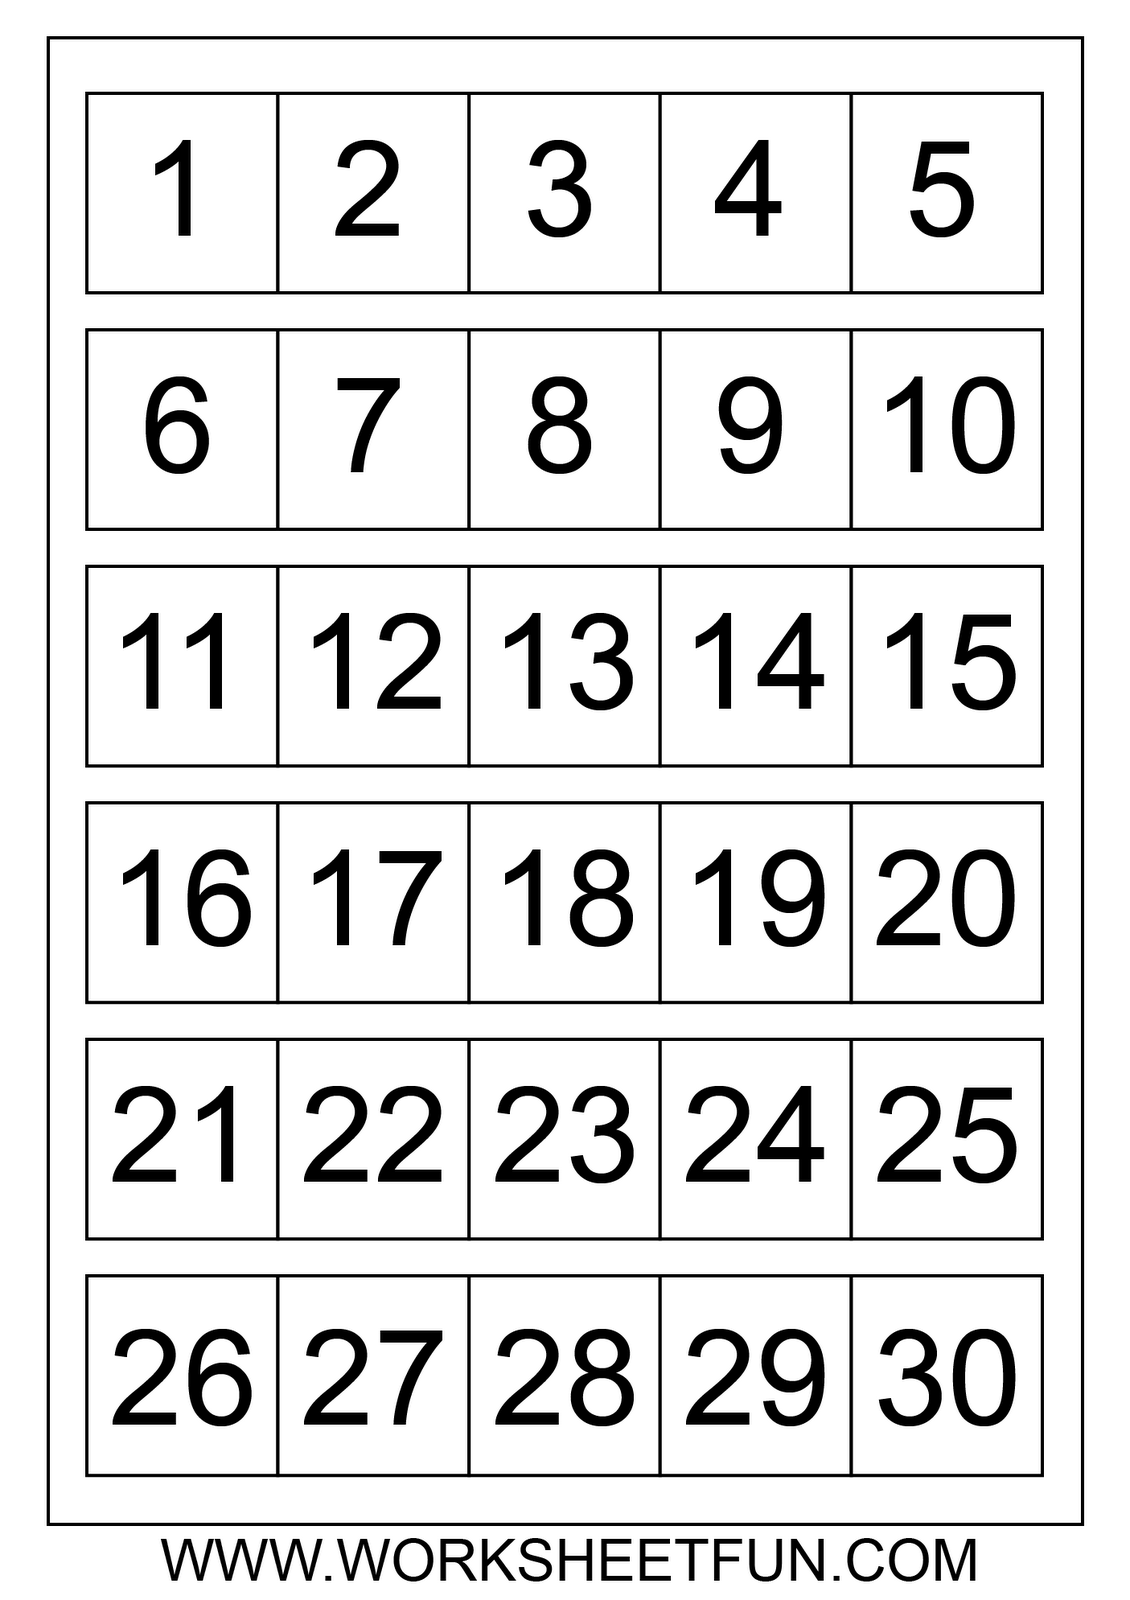 image relating to Free Large Printable Numbers called Enormous Printable Quantities 1 100 In direction of Dot With Quantities